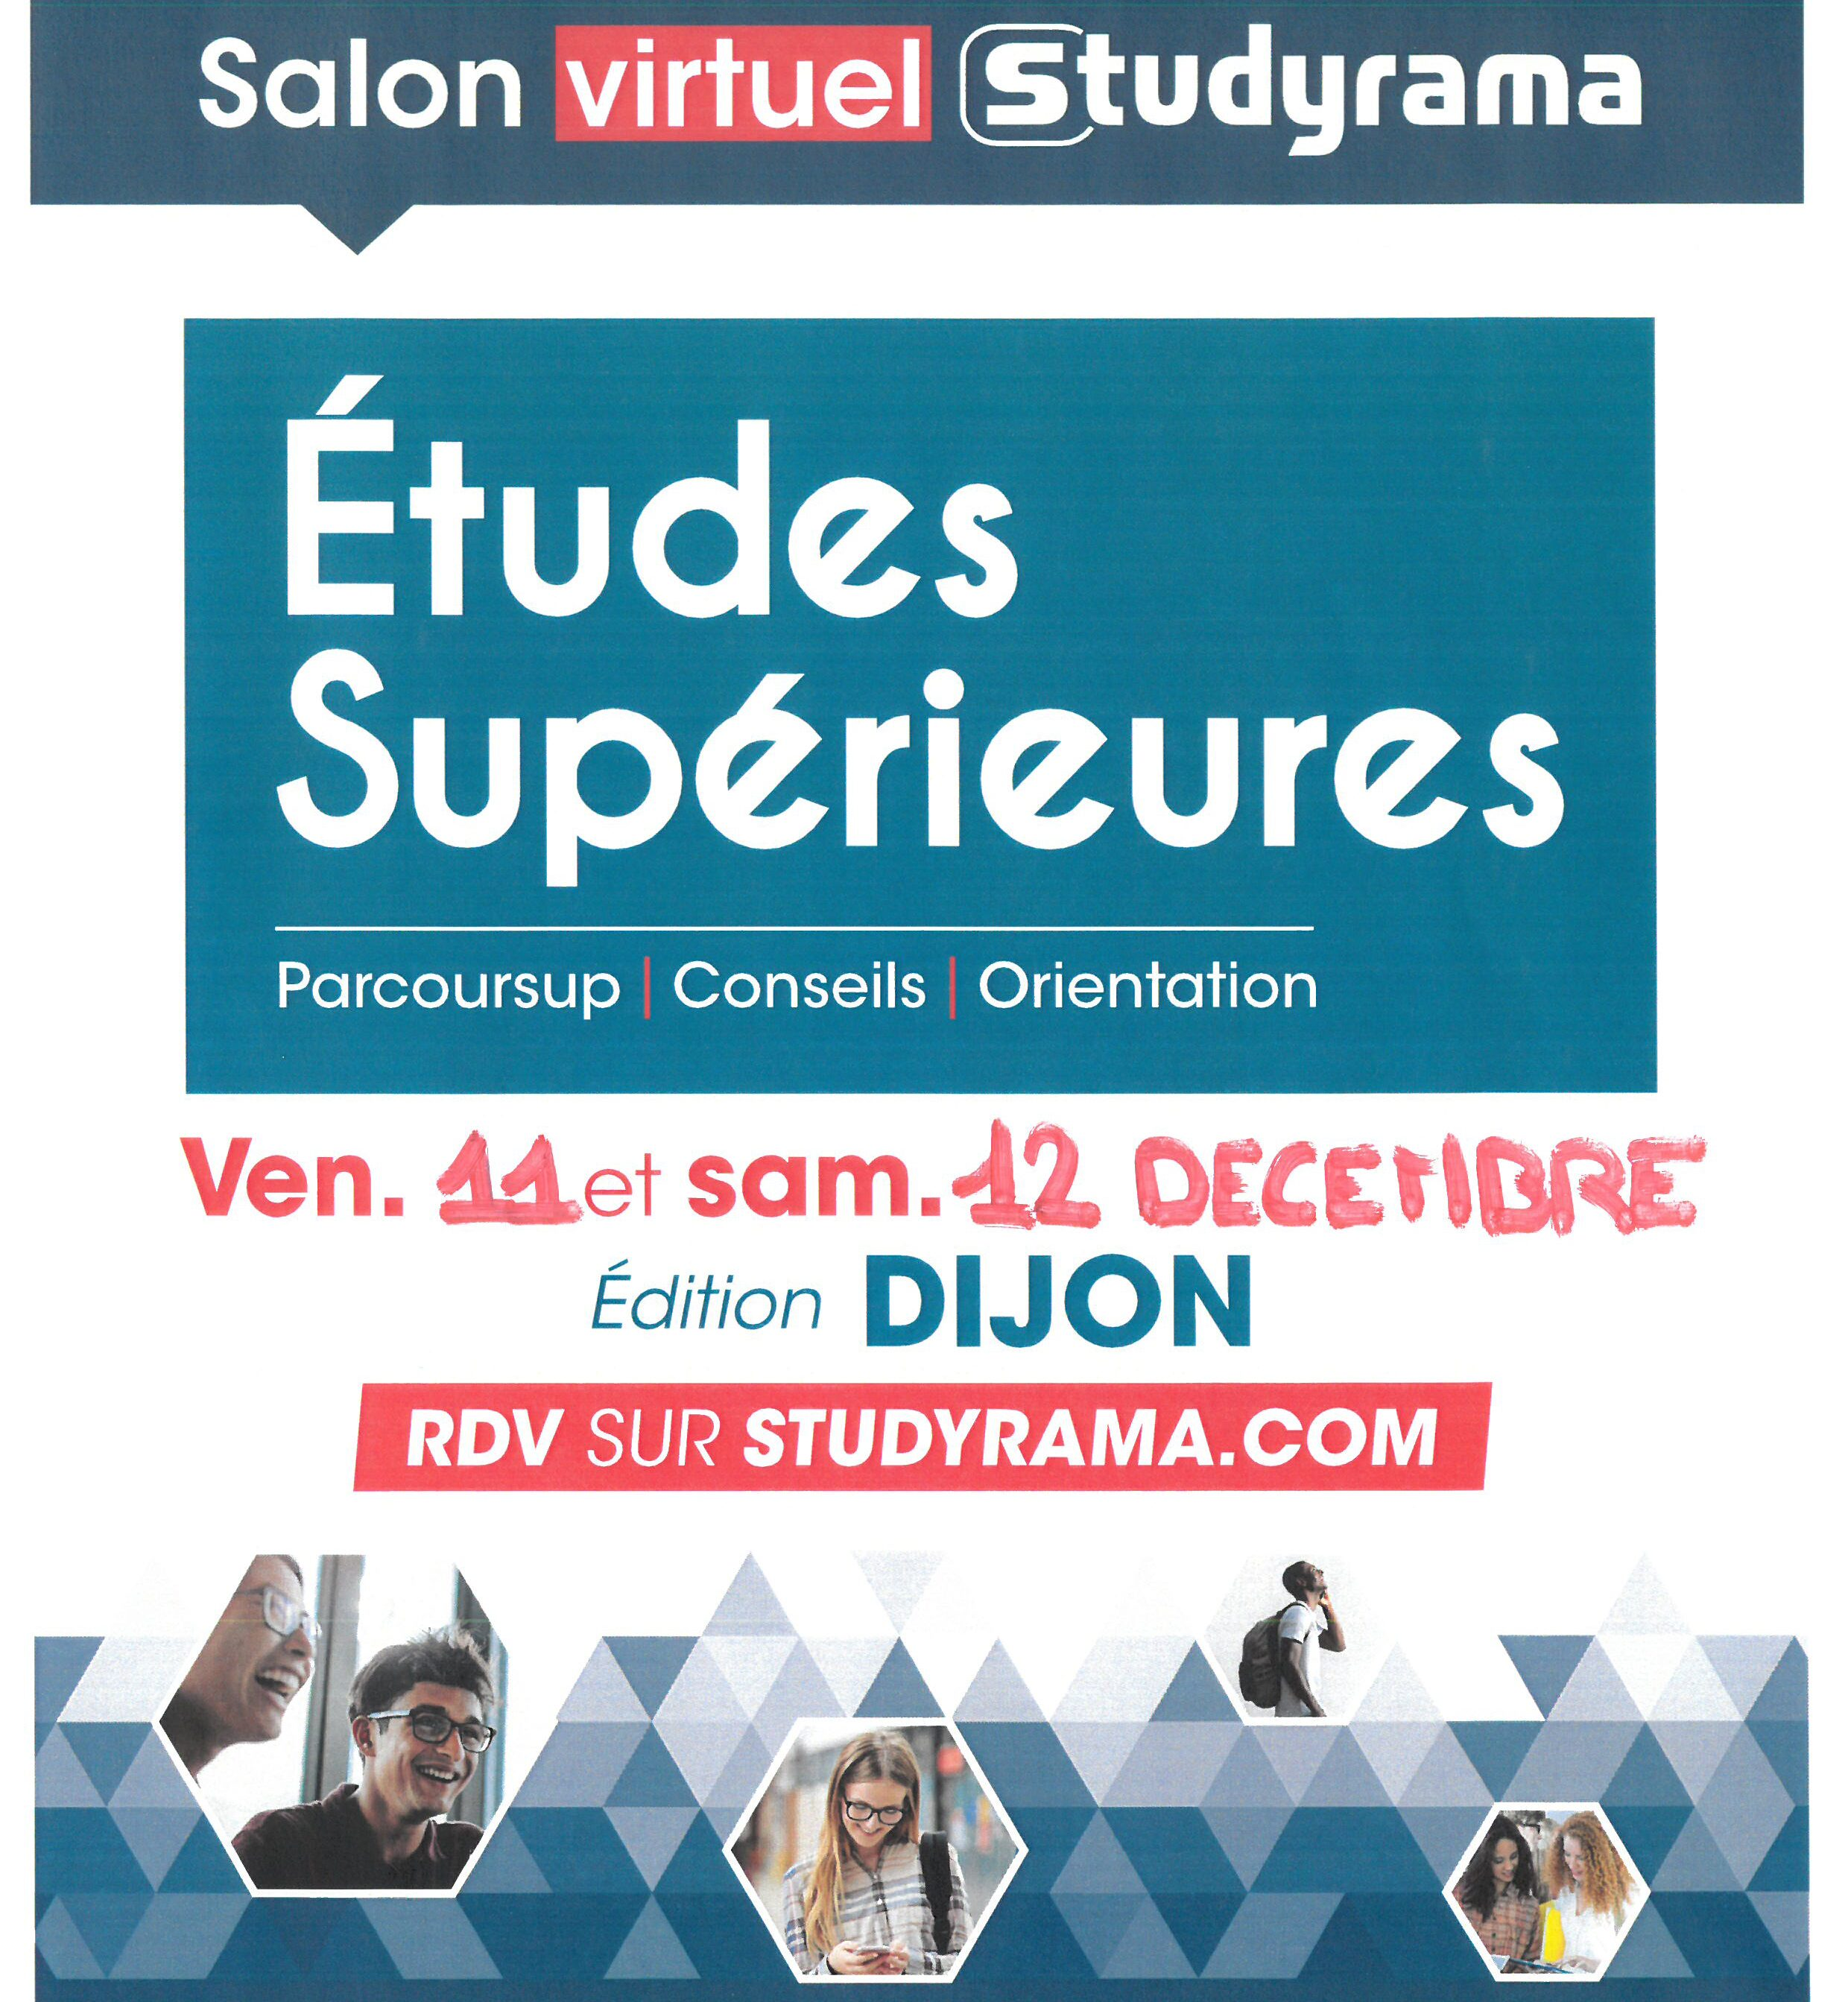 STUDYRAMA salon virtuel.jpg